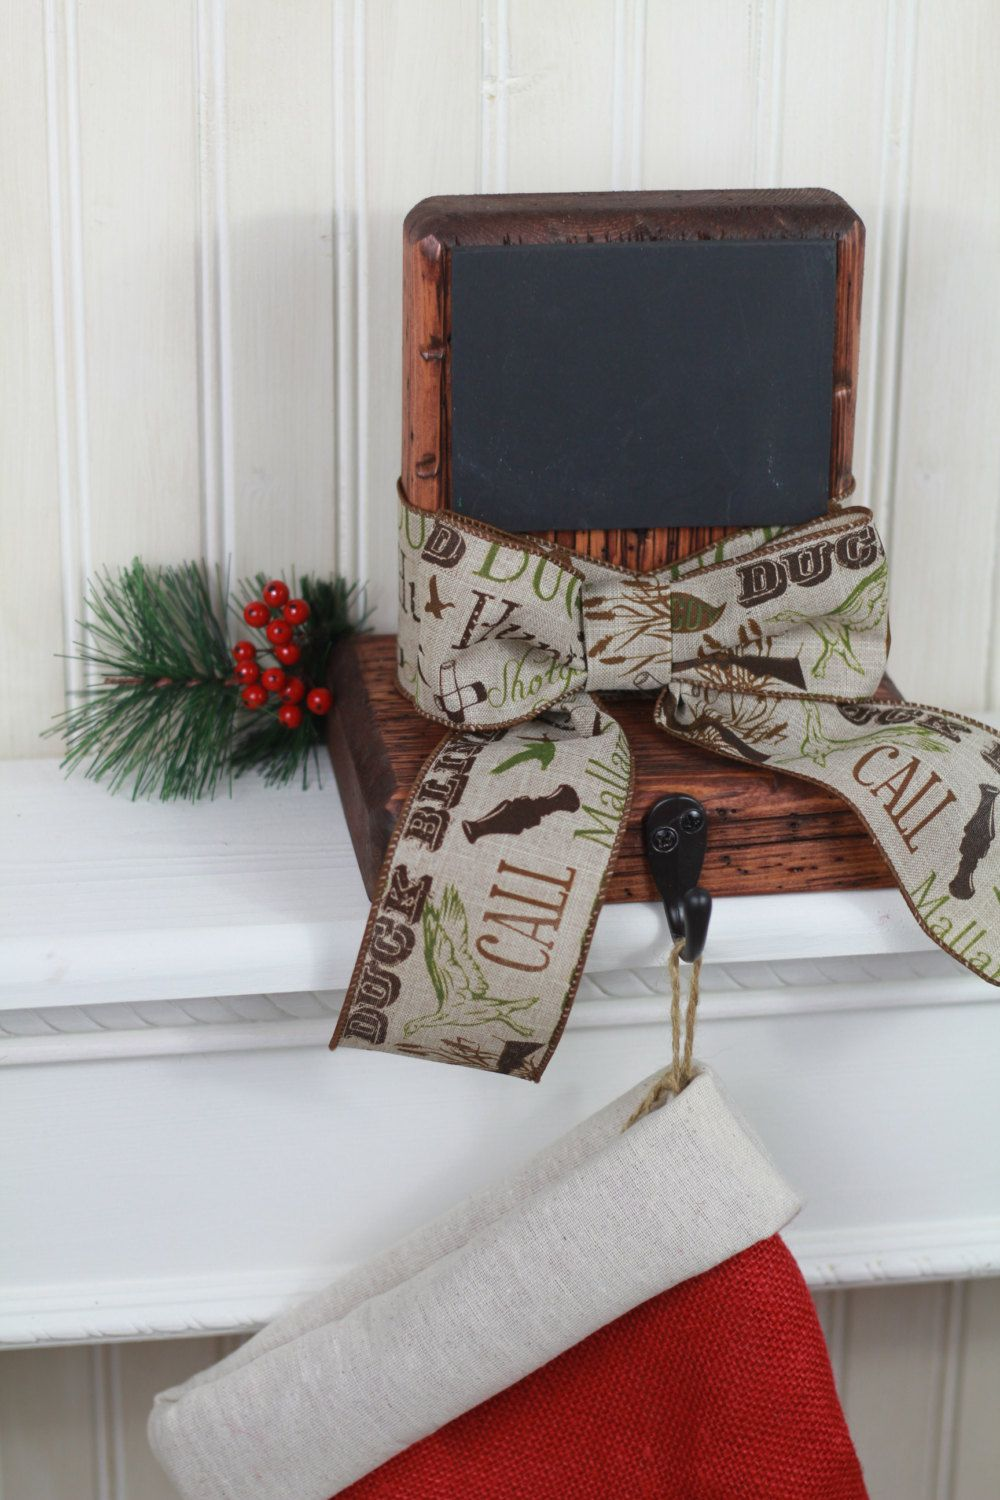 rustic christmas stocking holder w/duck hunting ribbon,holiday